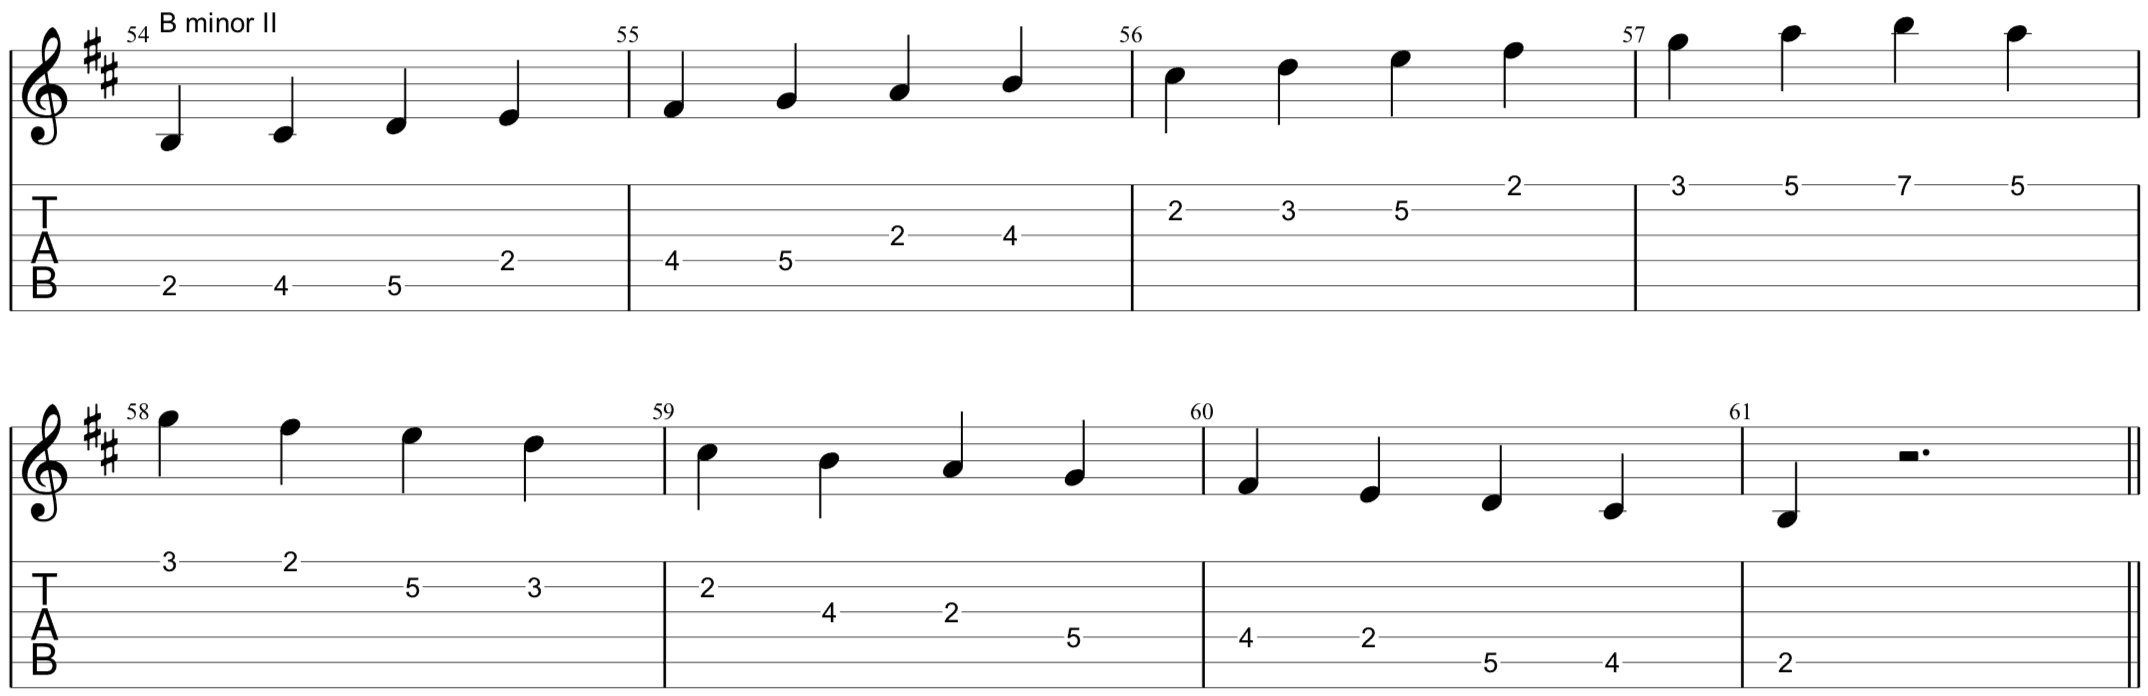 B minor scale with TAB